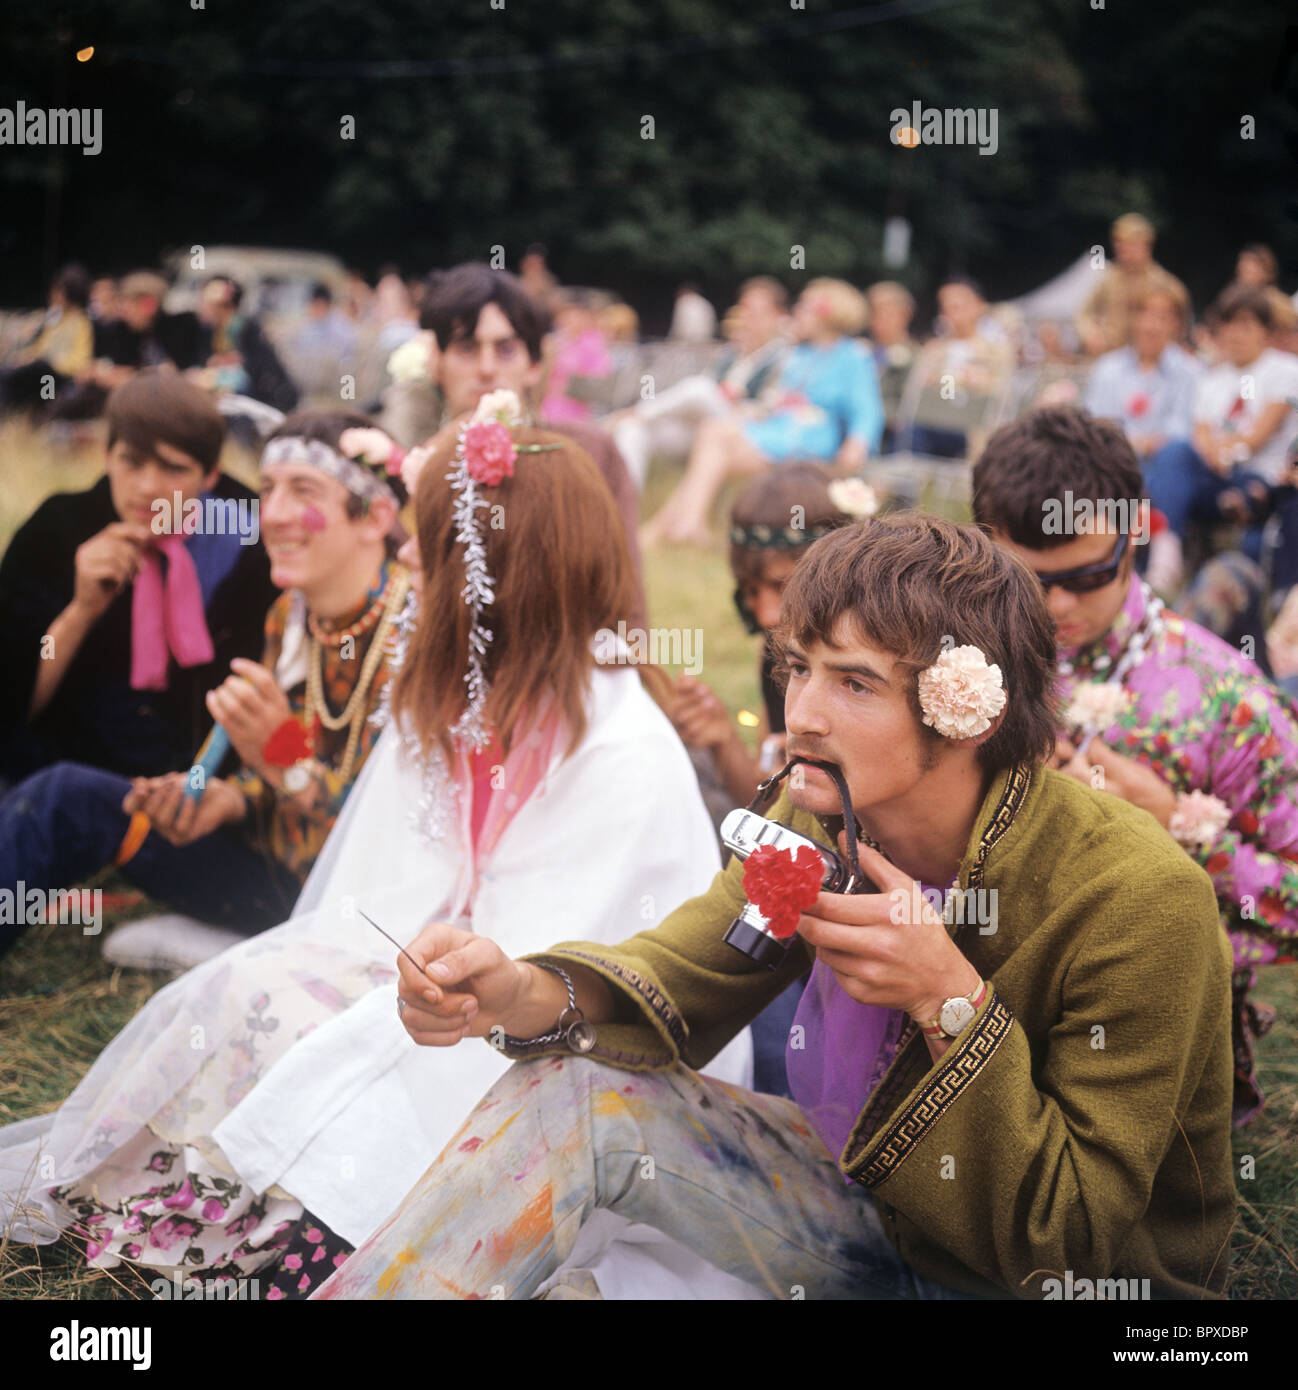 En Londres hippy, 1967 Foto de stock